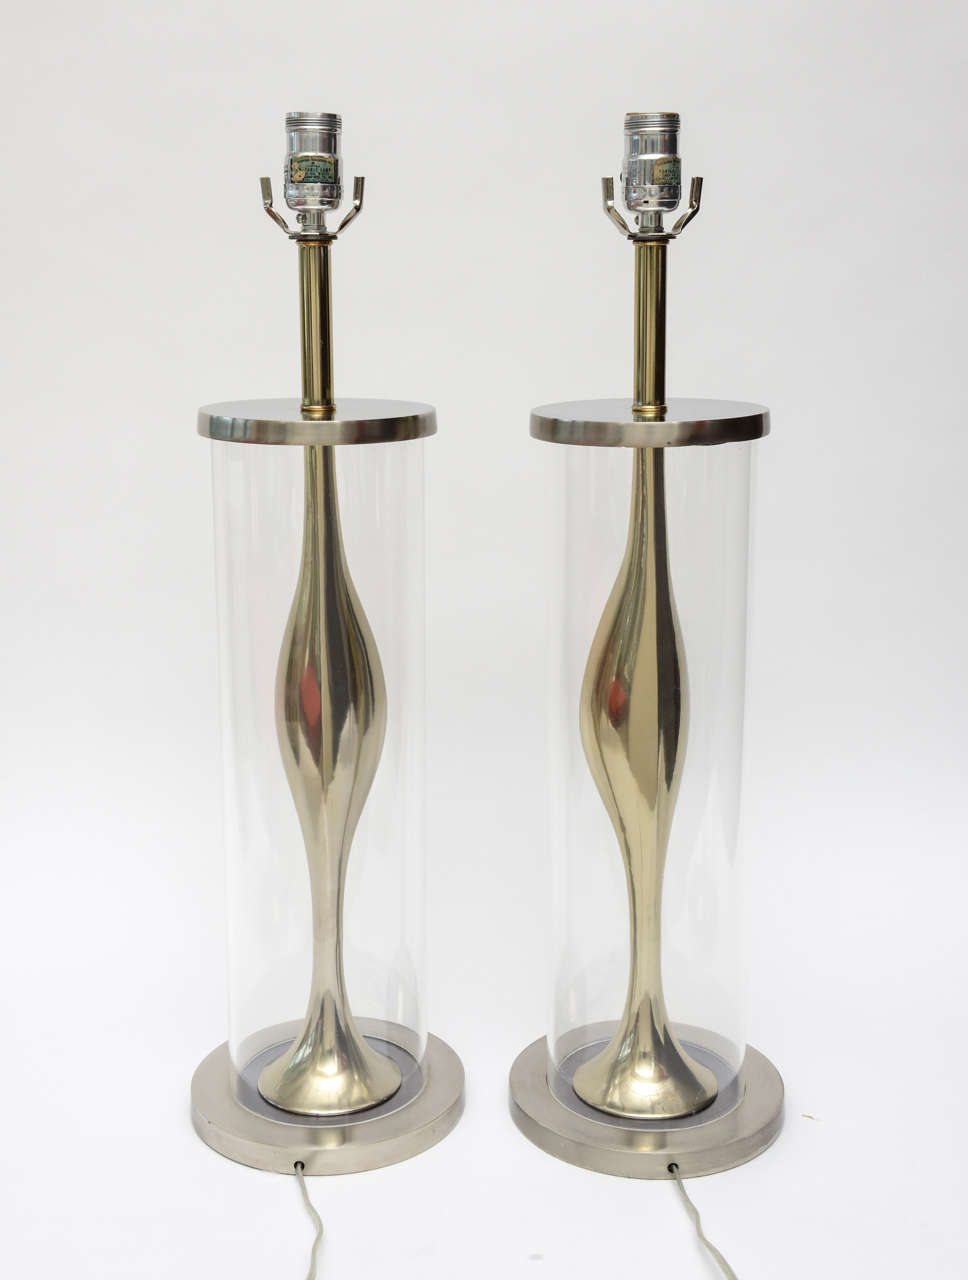 These very sculptural pair of Mid-Century Modern Laurel lamps are unusual, they have brushed stainless and polished brass with a Lucite cylinder on the outside encasing the metal work. They have a sensuality to them in their form. Laurel Lamp Co.